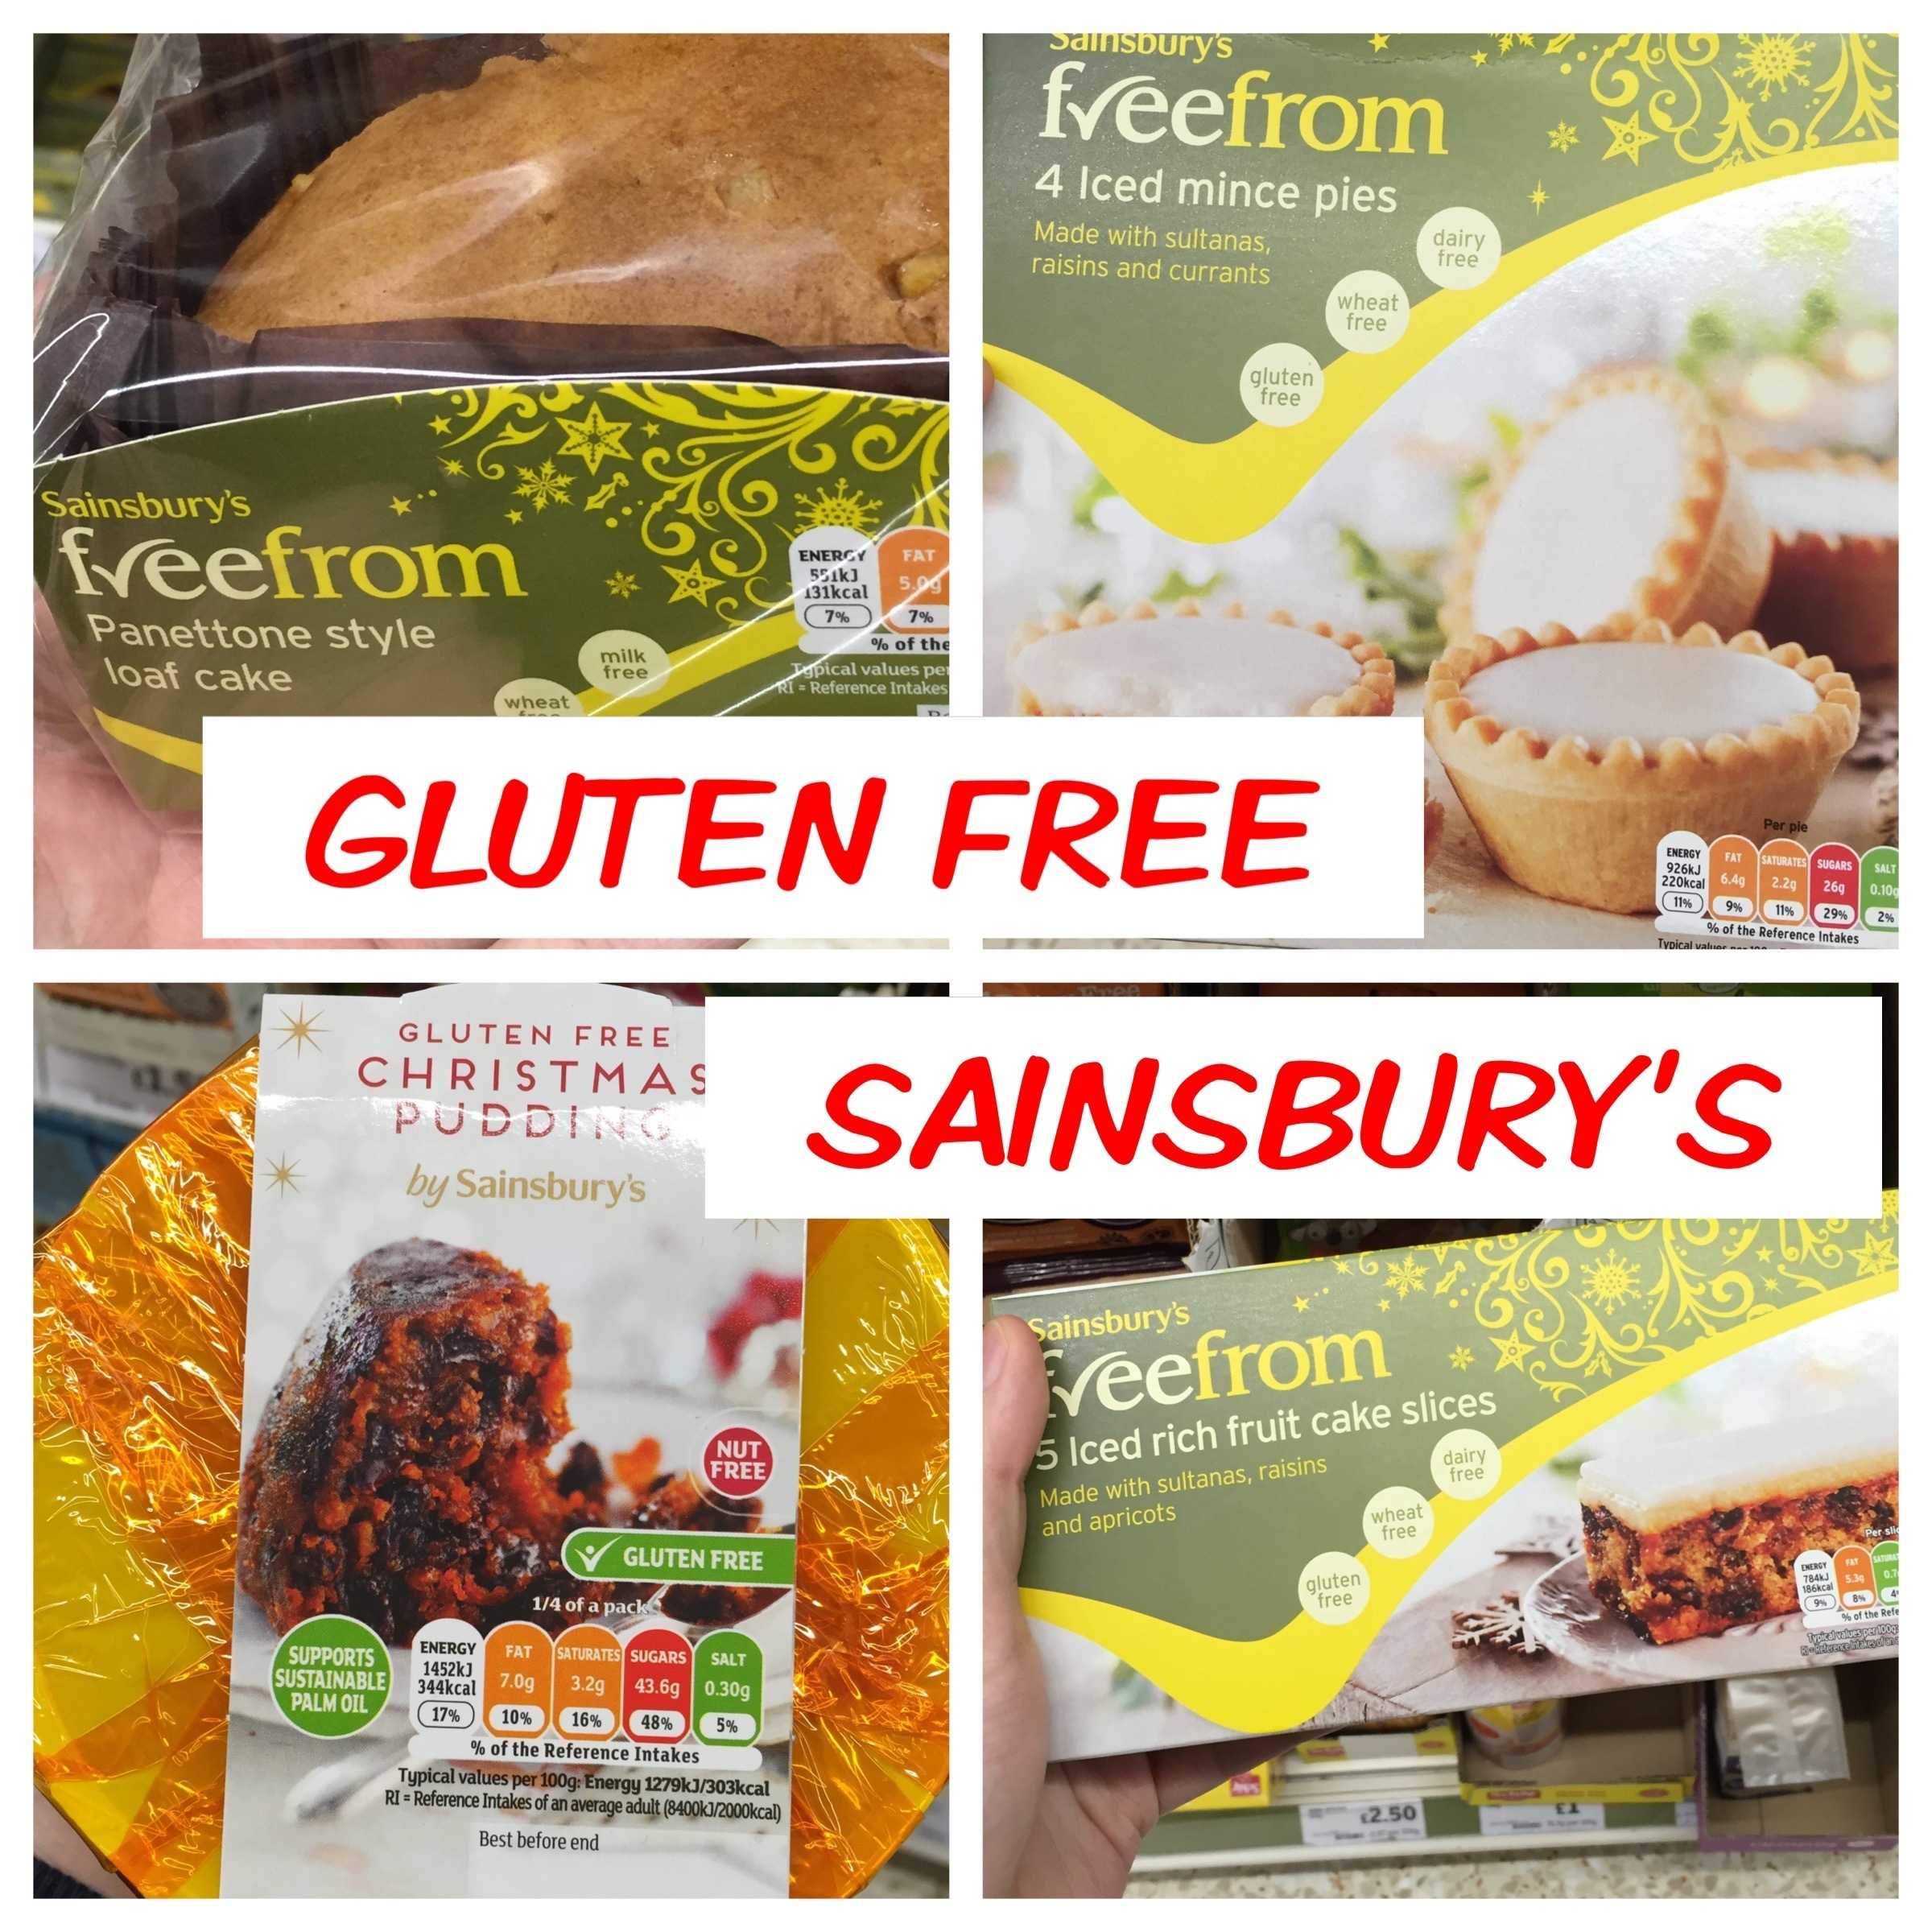 What Gluten Free Christmas Products are Sainsbury's selling this year?